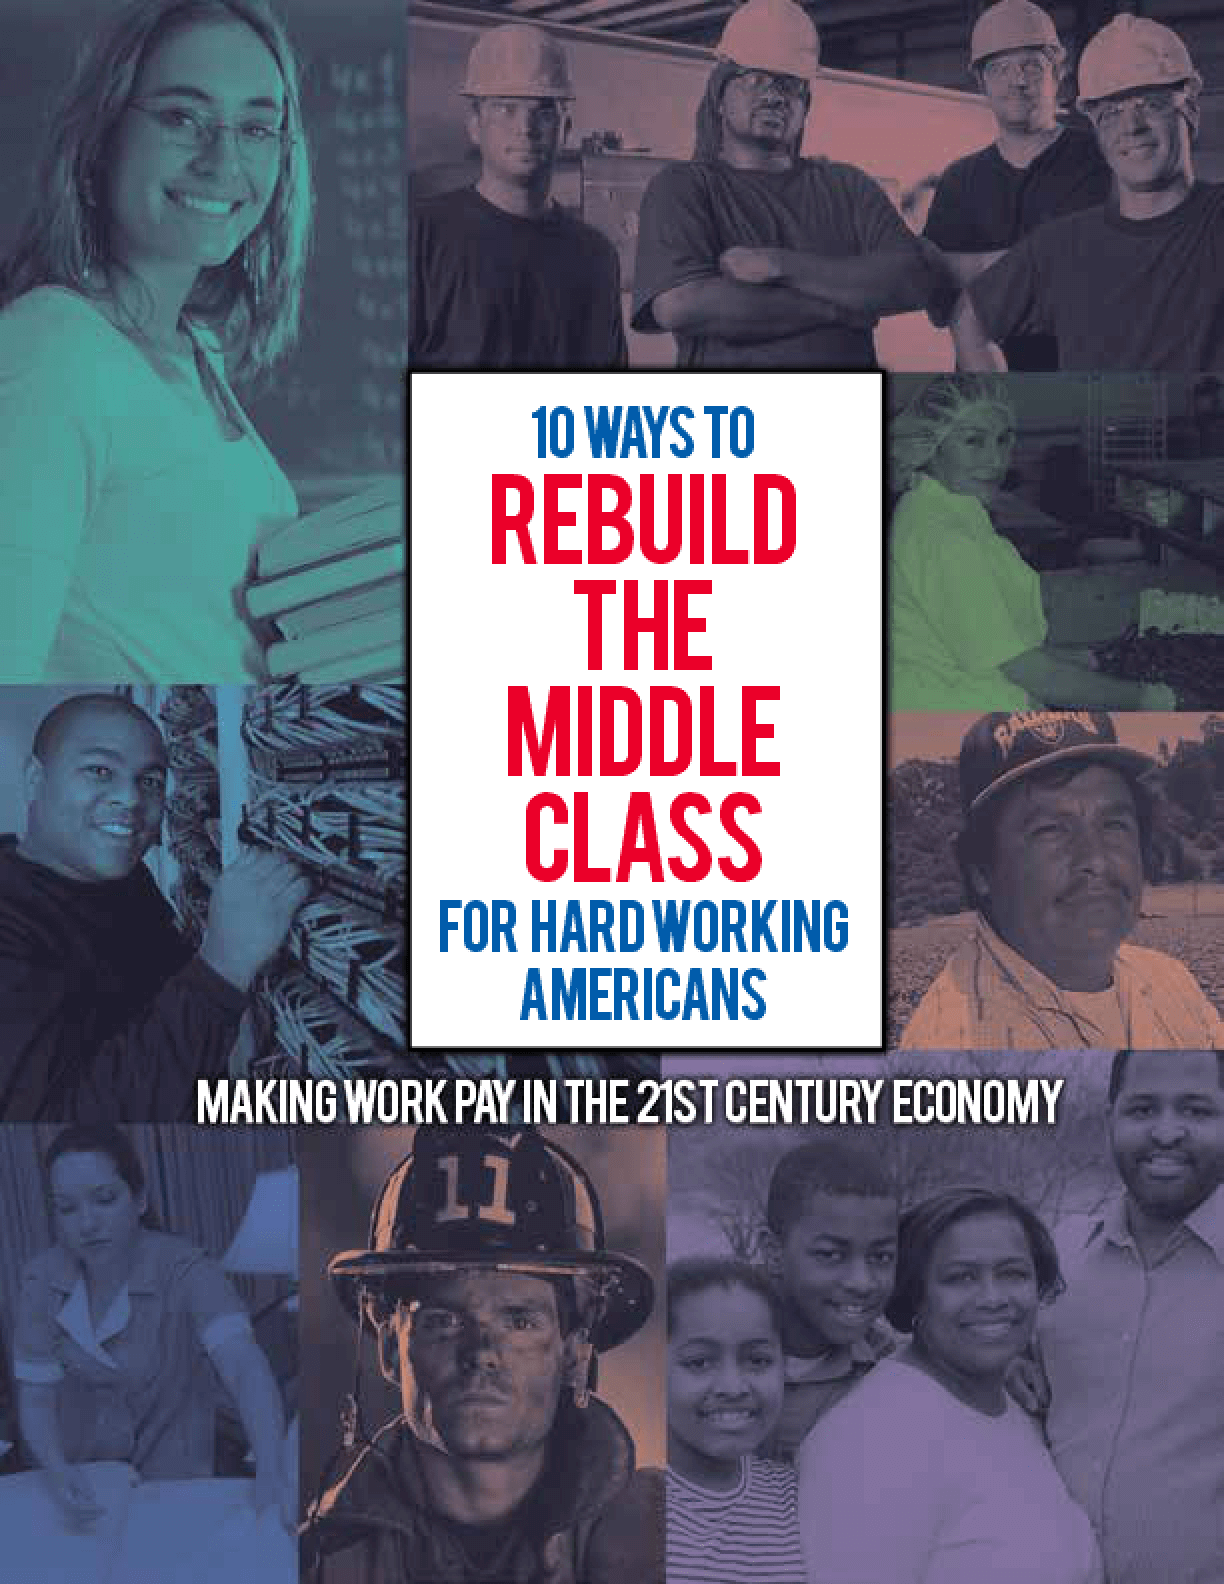 10 Ways to Rebuild the Middle Class for Hard Working Americans: Making Work Pay in the 21st Century